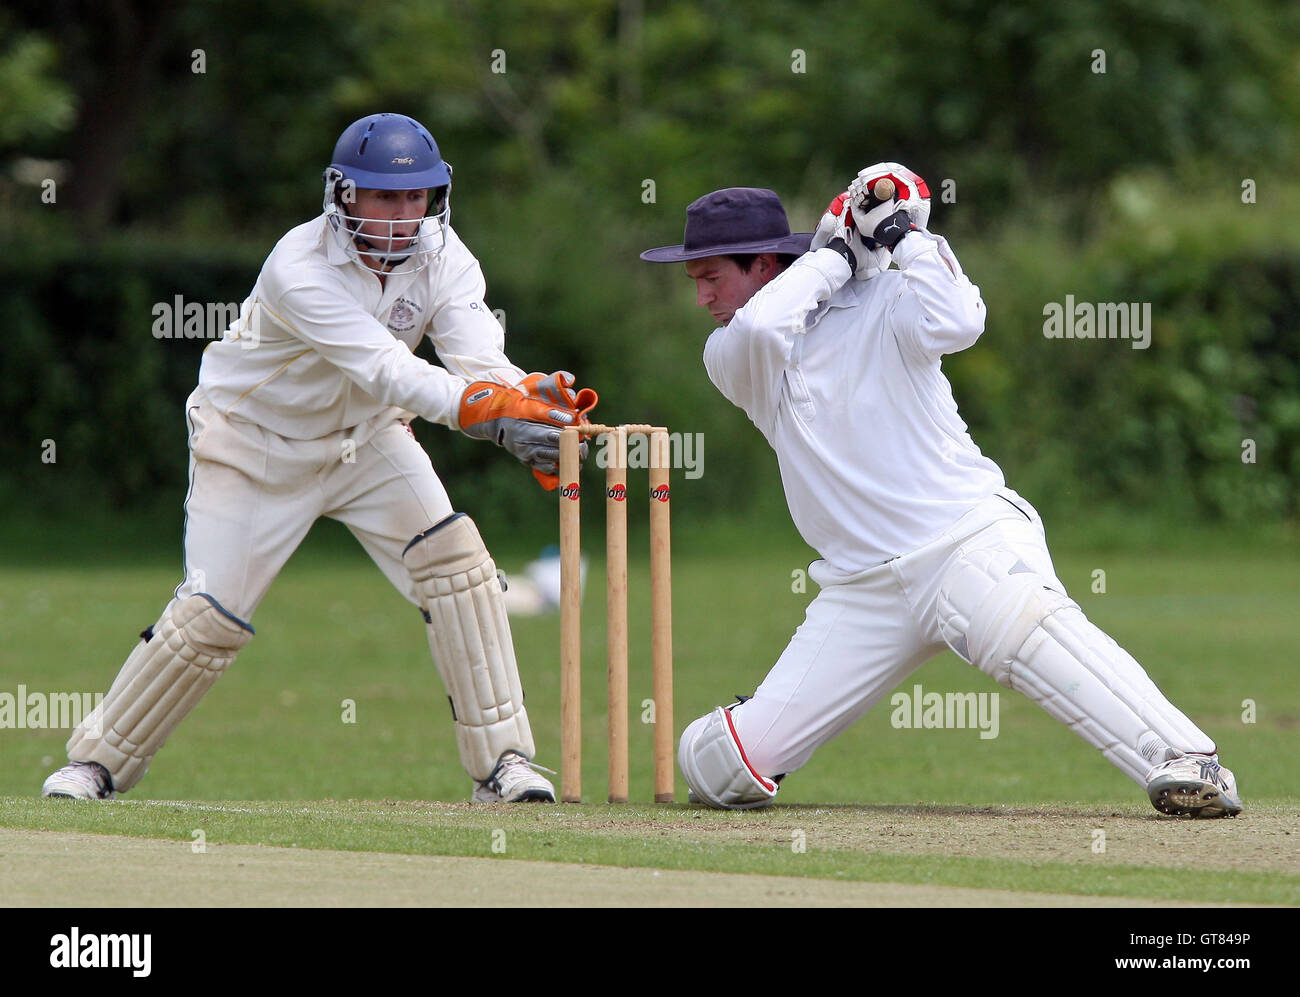 C Swainland behind the stumps as Chingford batsman J Hill looks to hit out - Gidea Park & Romford CC vs Chingford - Stock Image